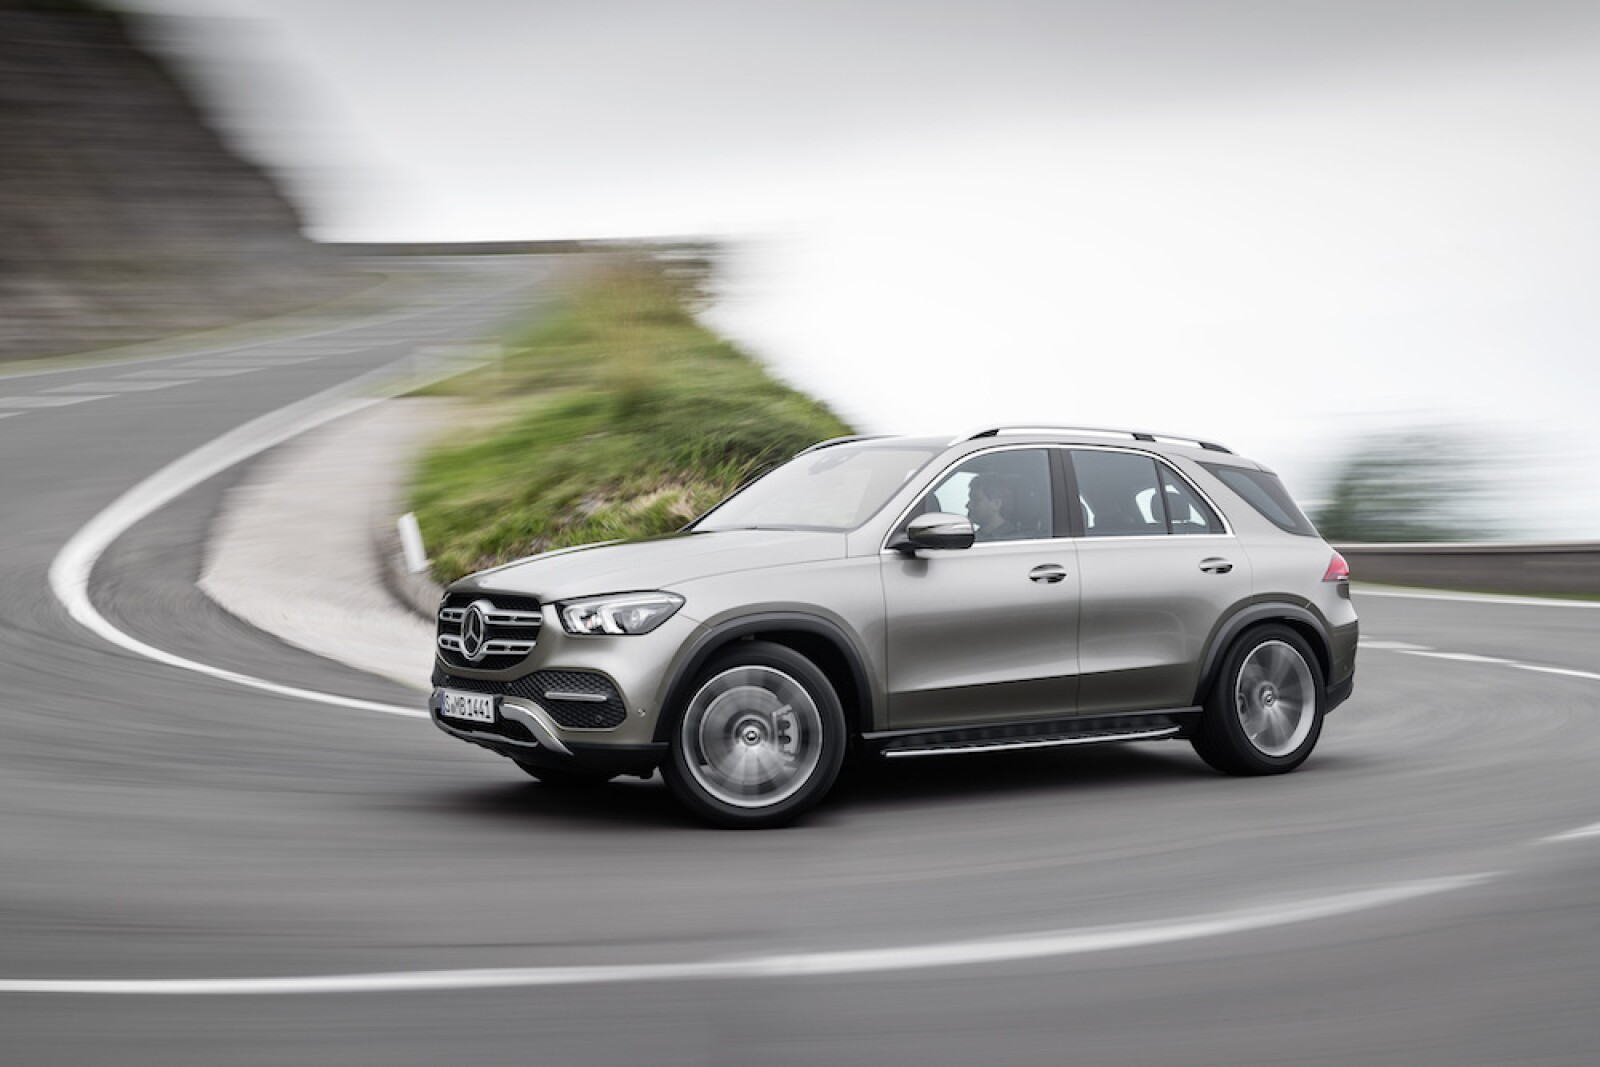 Der neue Mercedes-Benz GLE: Der SUV-Trendsetter, ganz neu durchdacht